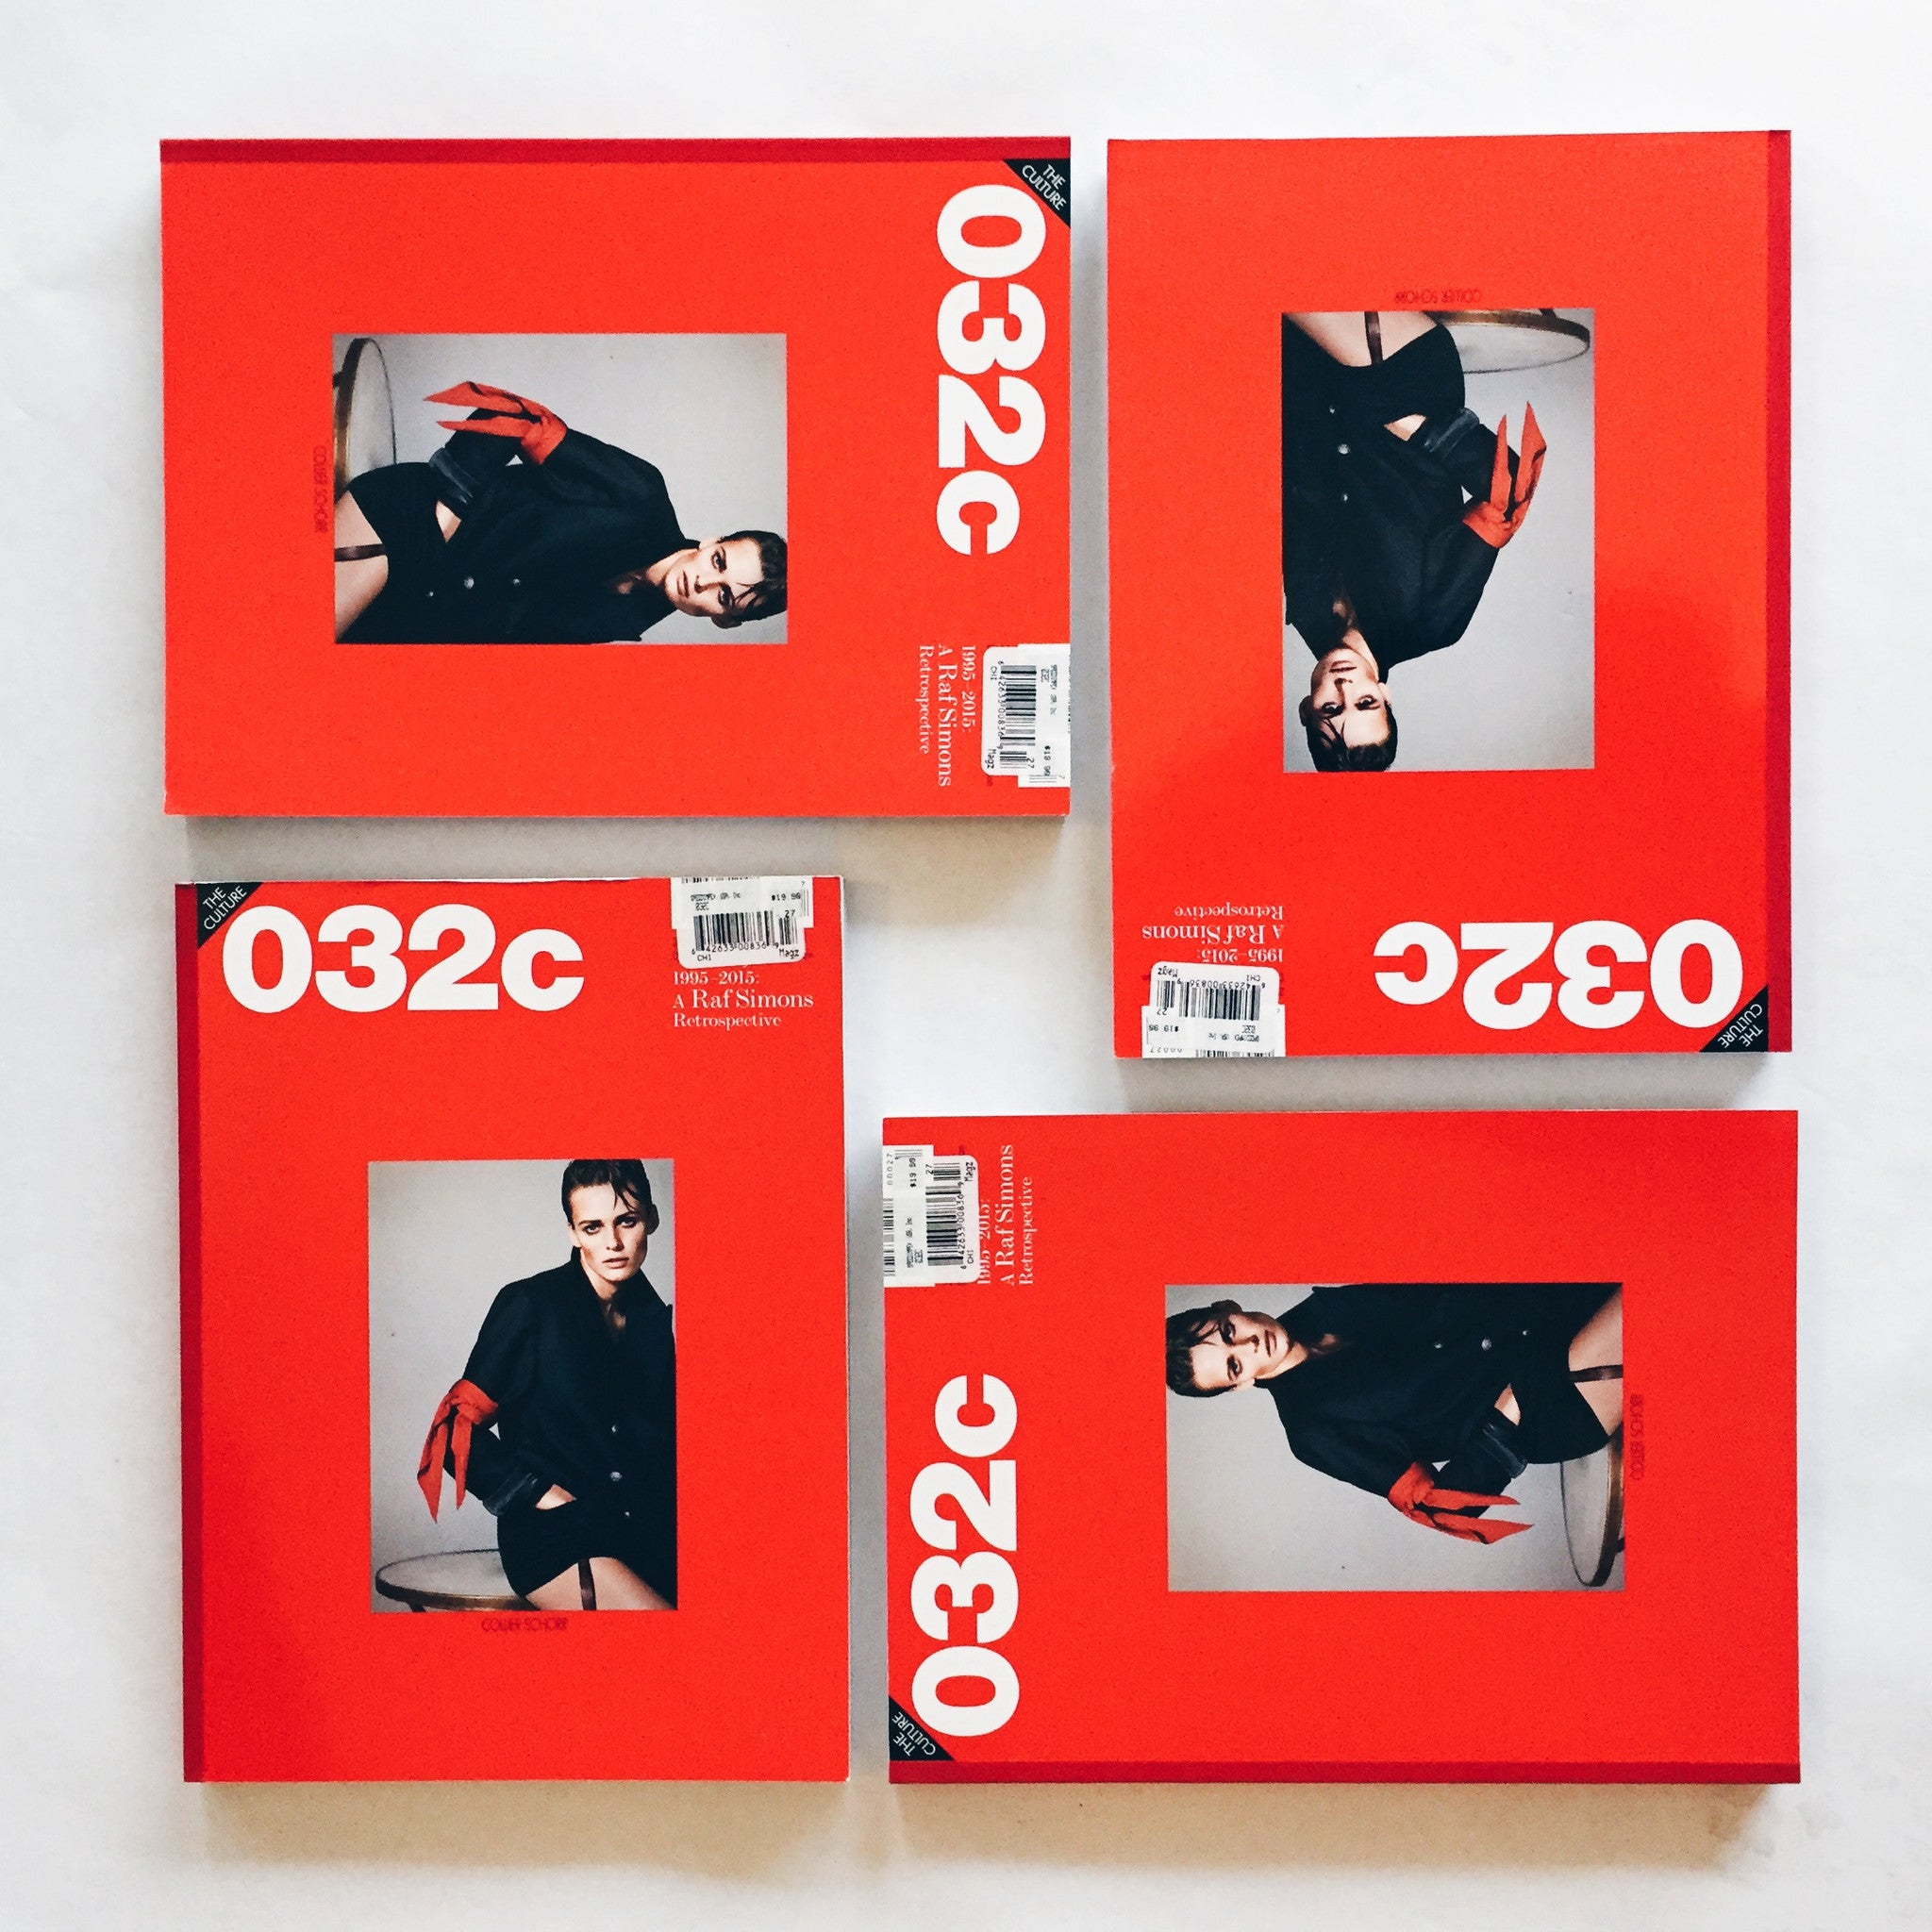 032c issue 27